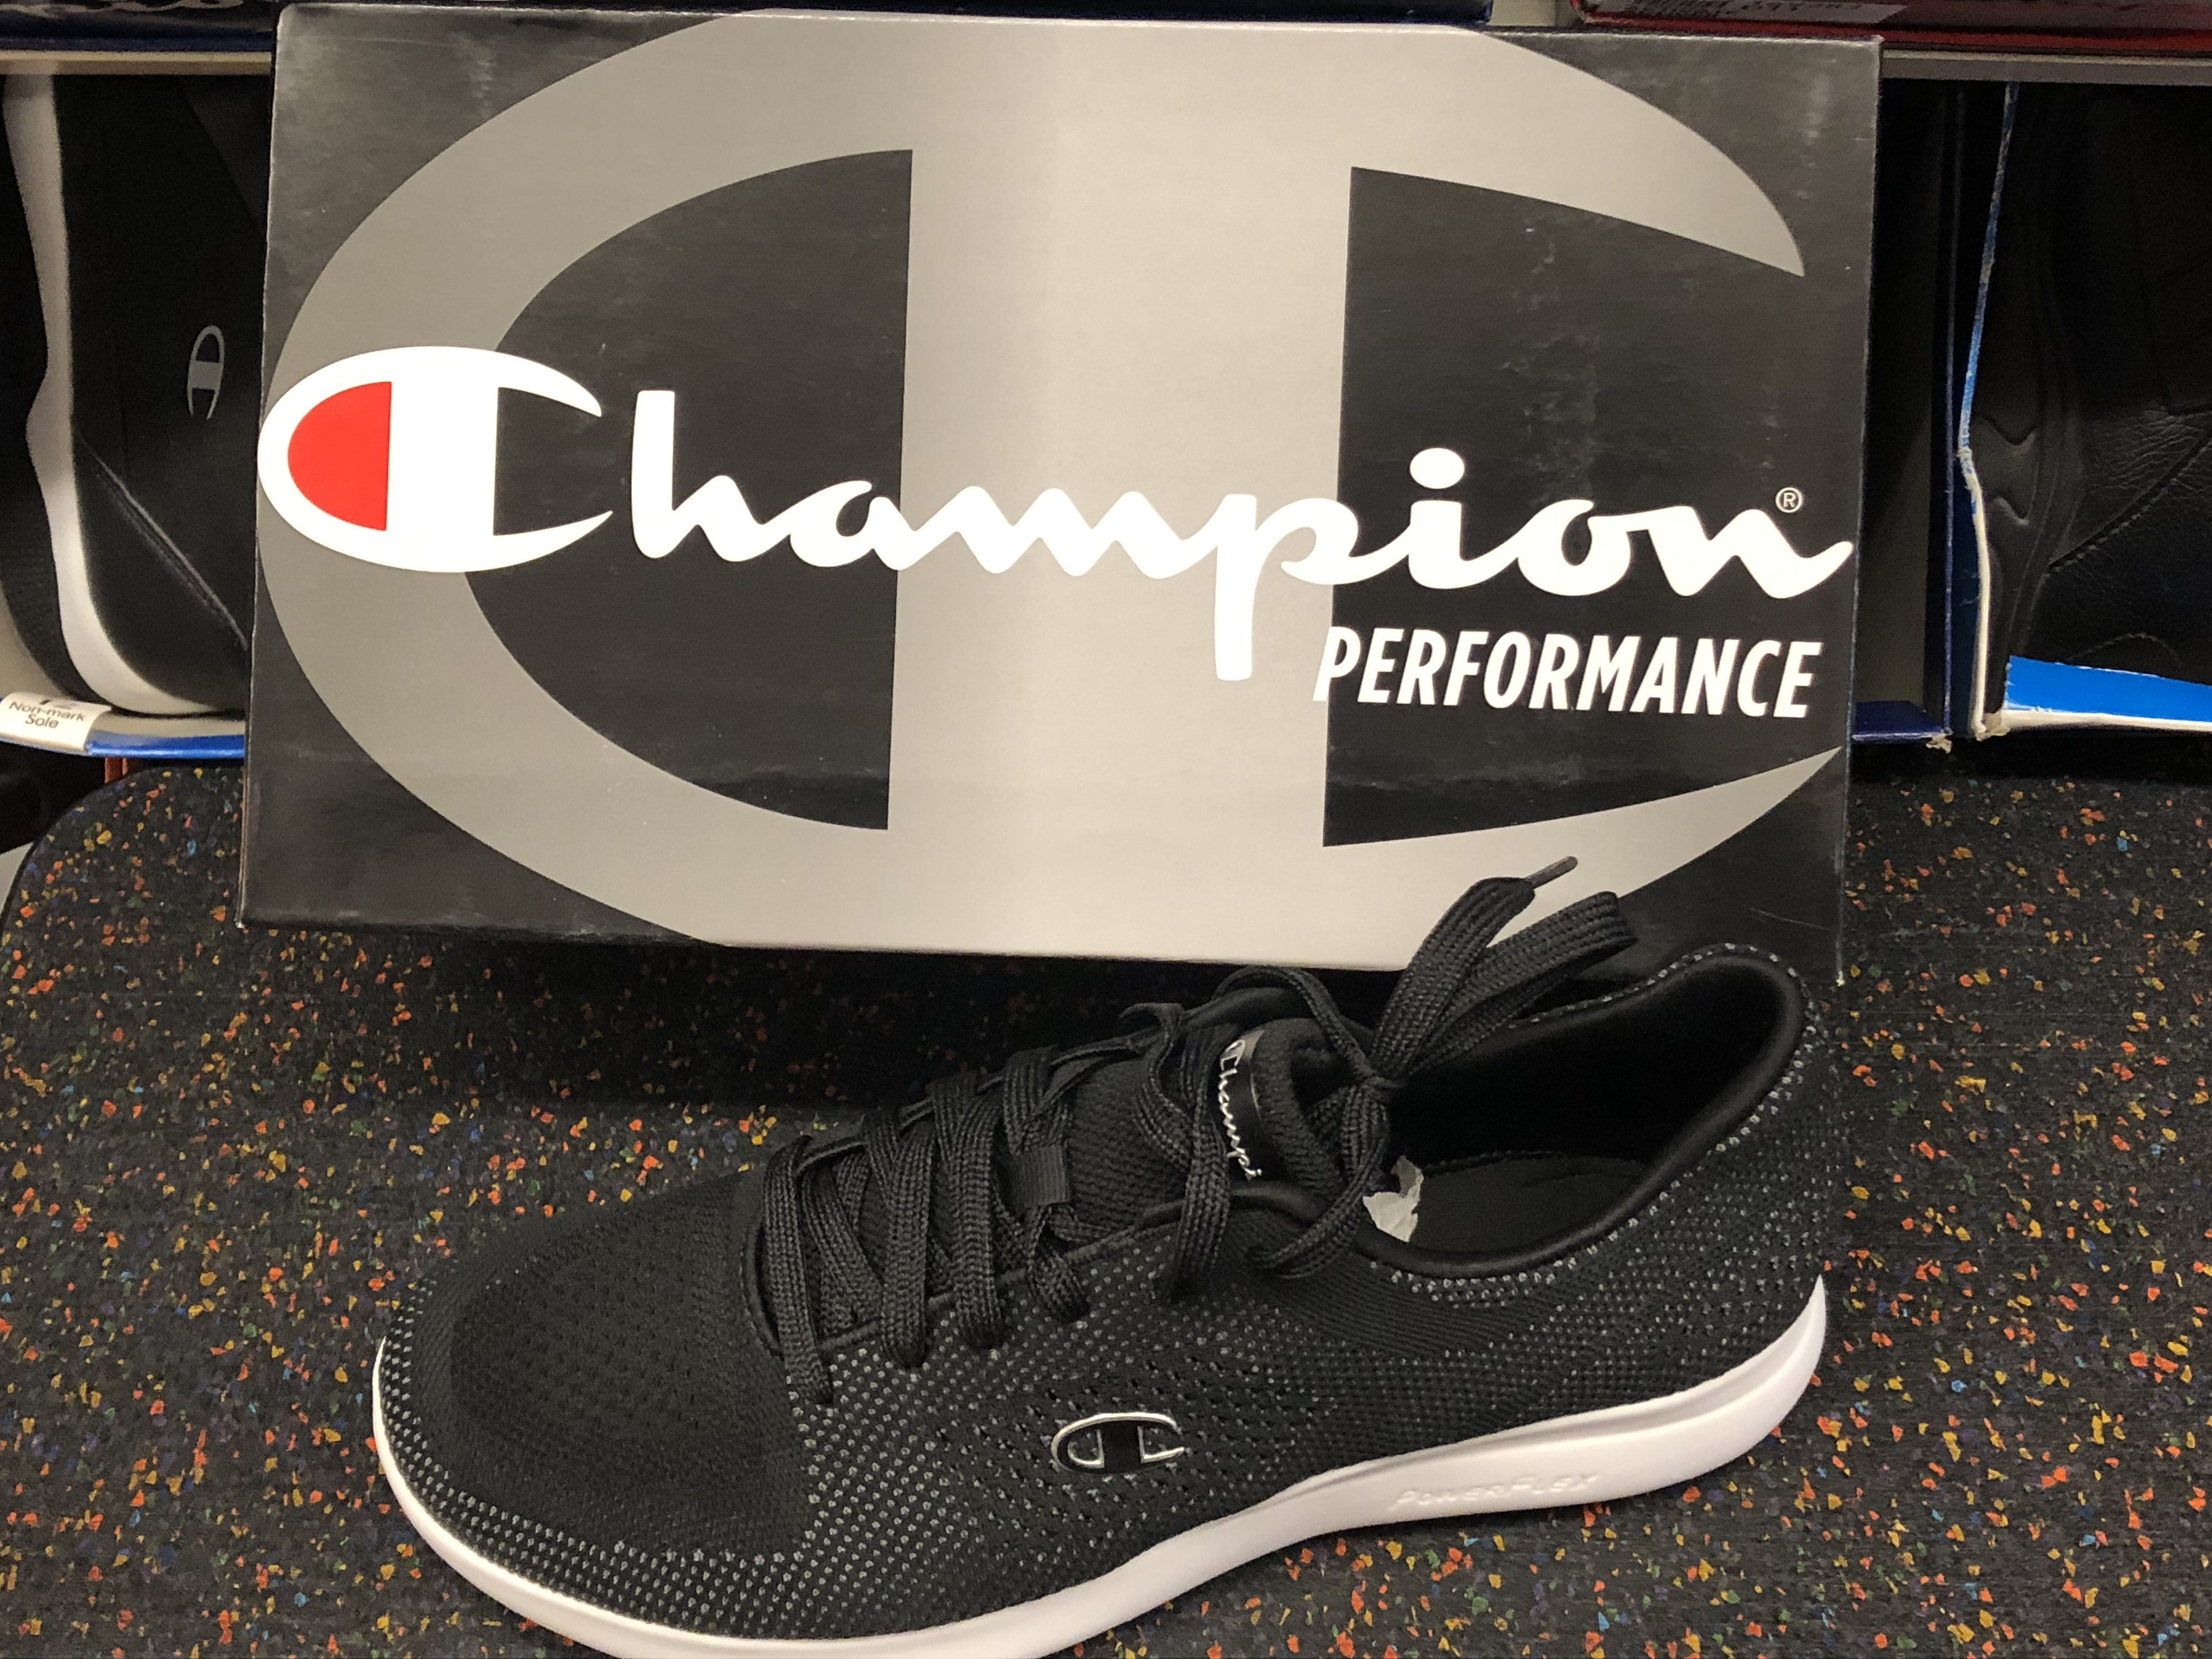 30b39a7e2e Bogo off mens running shoes at payless the krazy coupon lady jpg 4032x3024 Payless  men sneakers